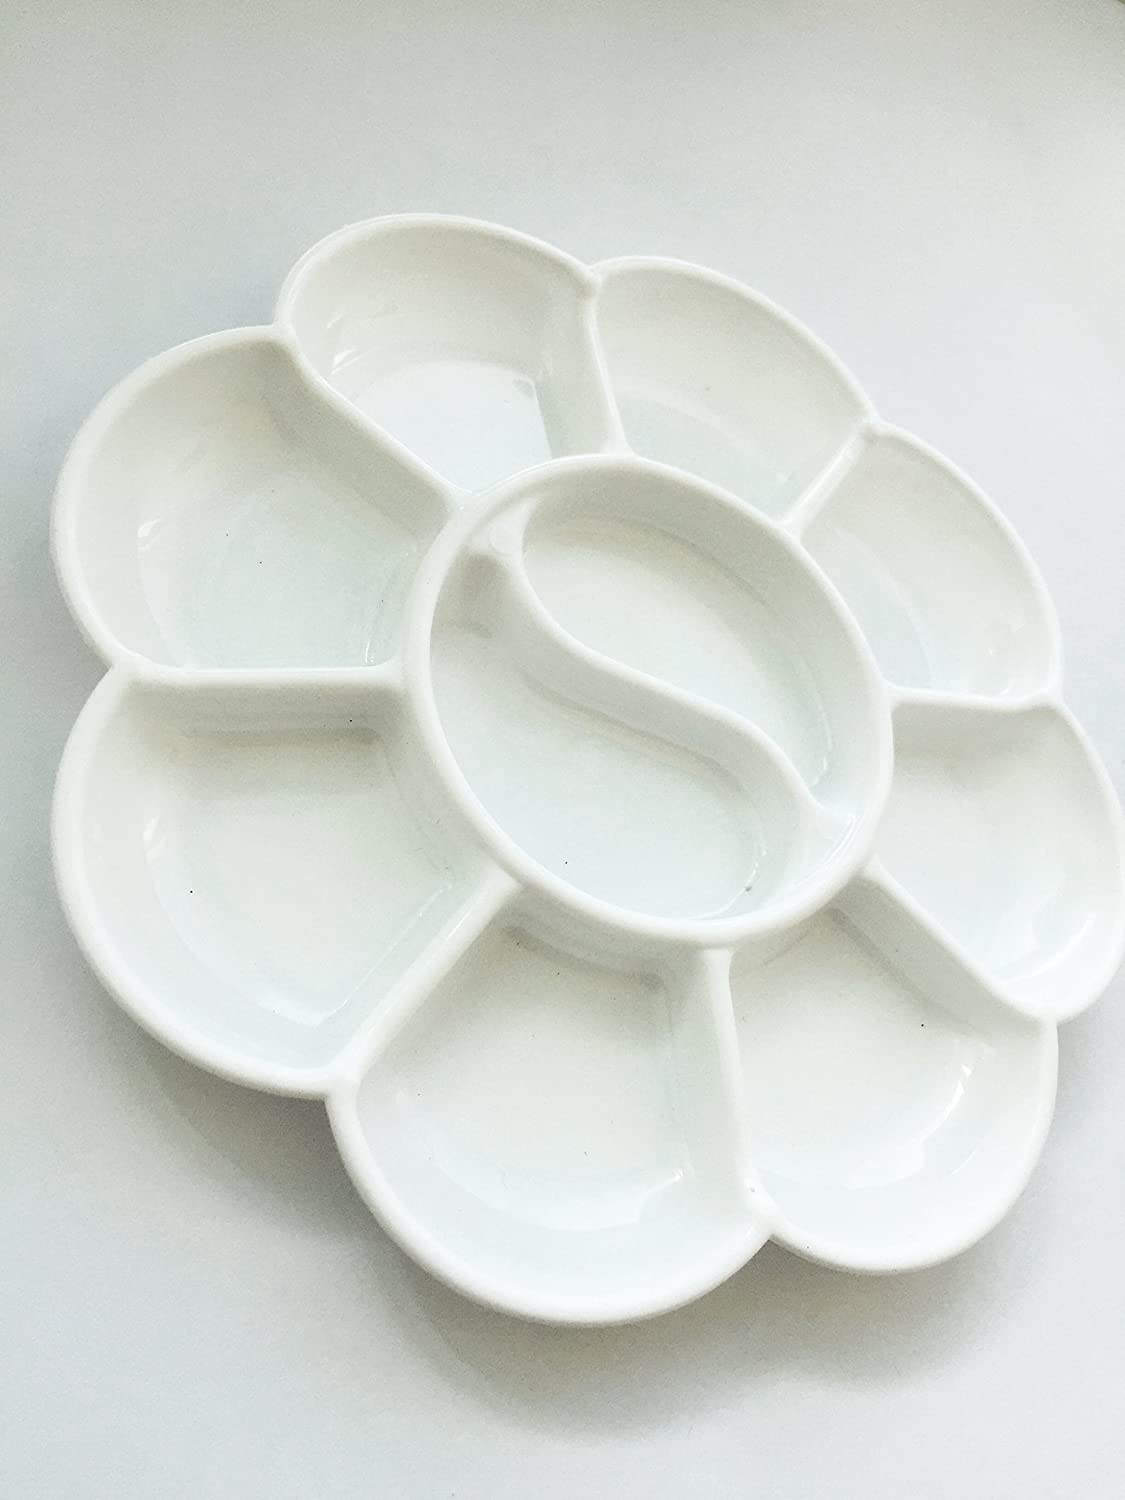 Round Shape Plastic White Paint Mixing Palette Tray for Kids Art Painting Tool